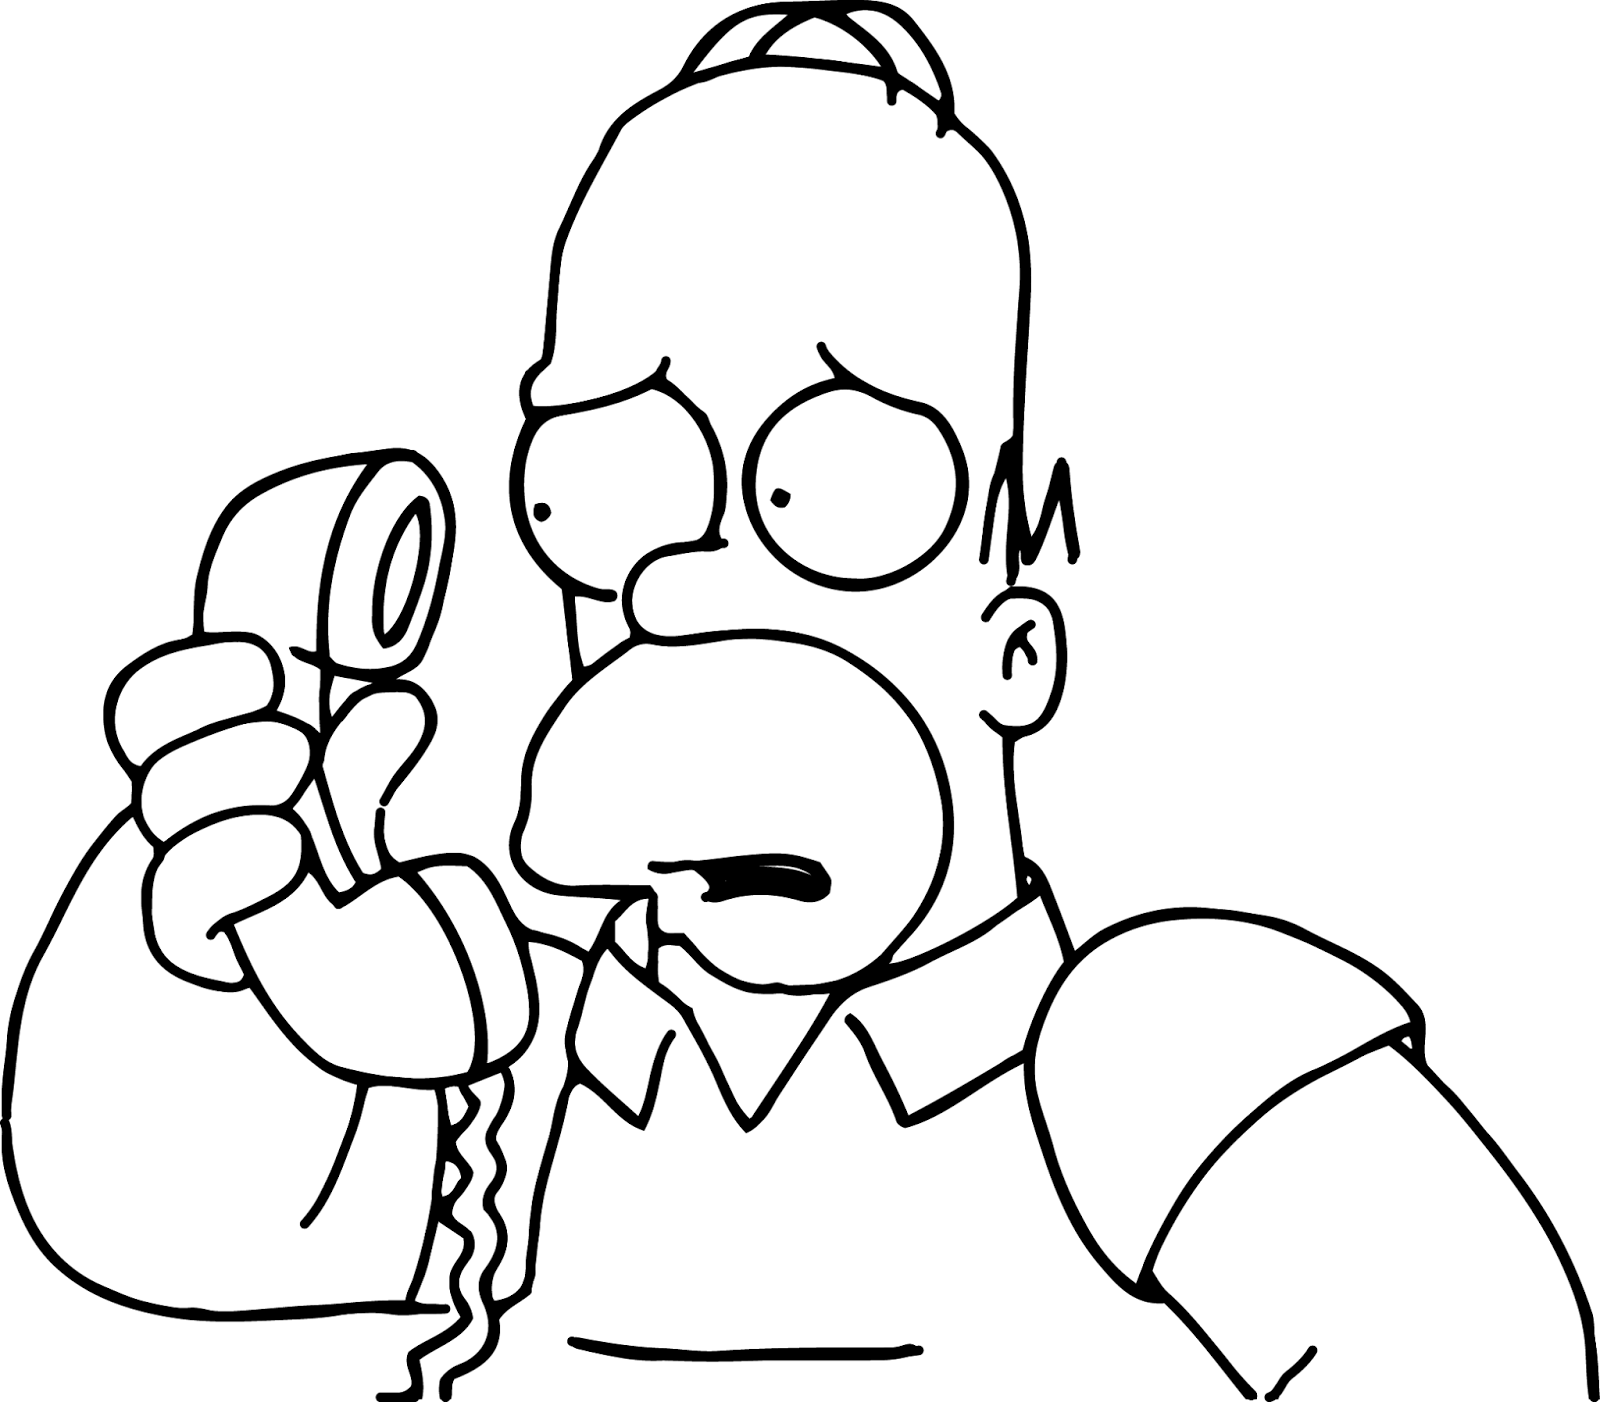 homer coloring pages - photo#18